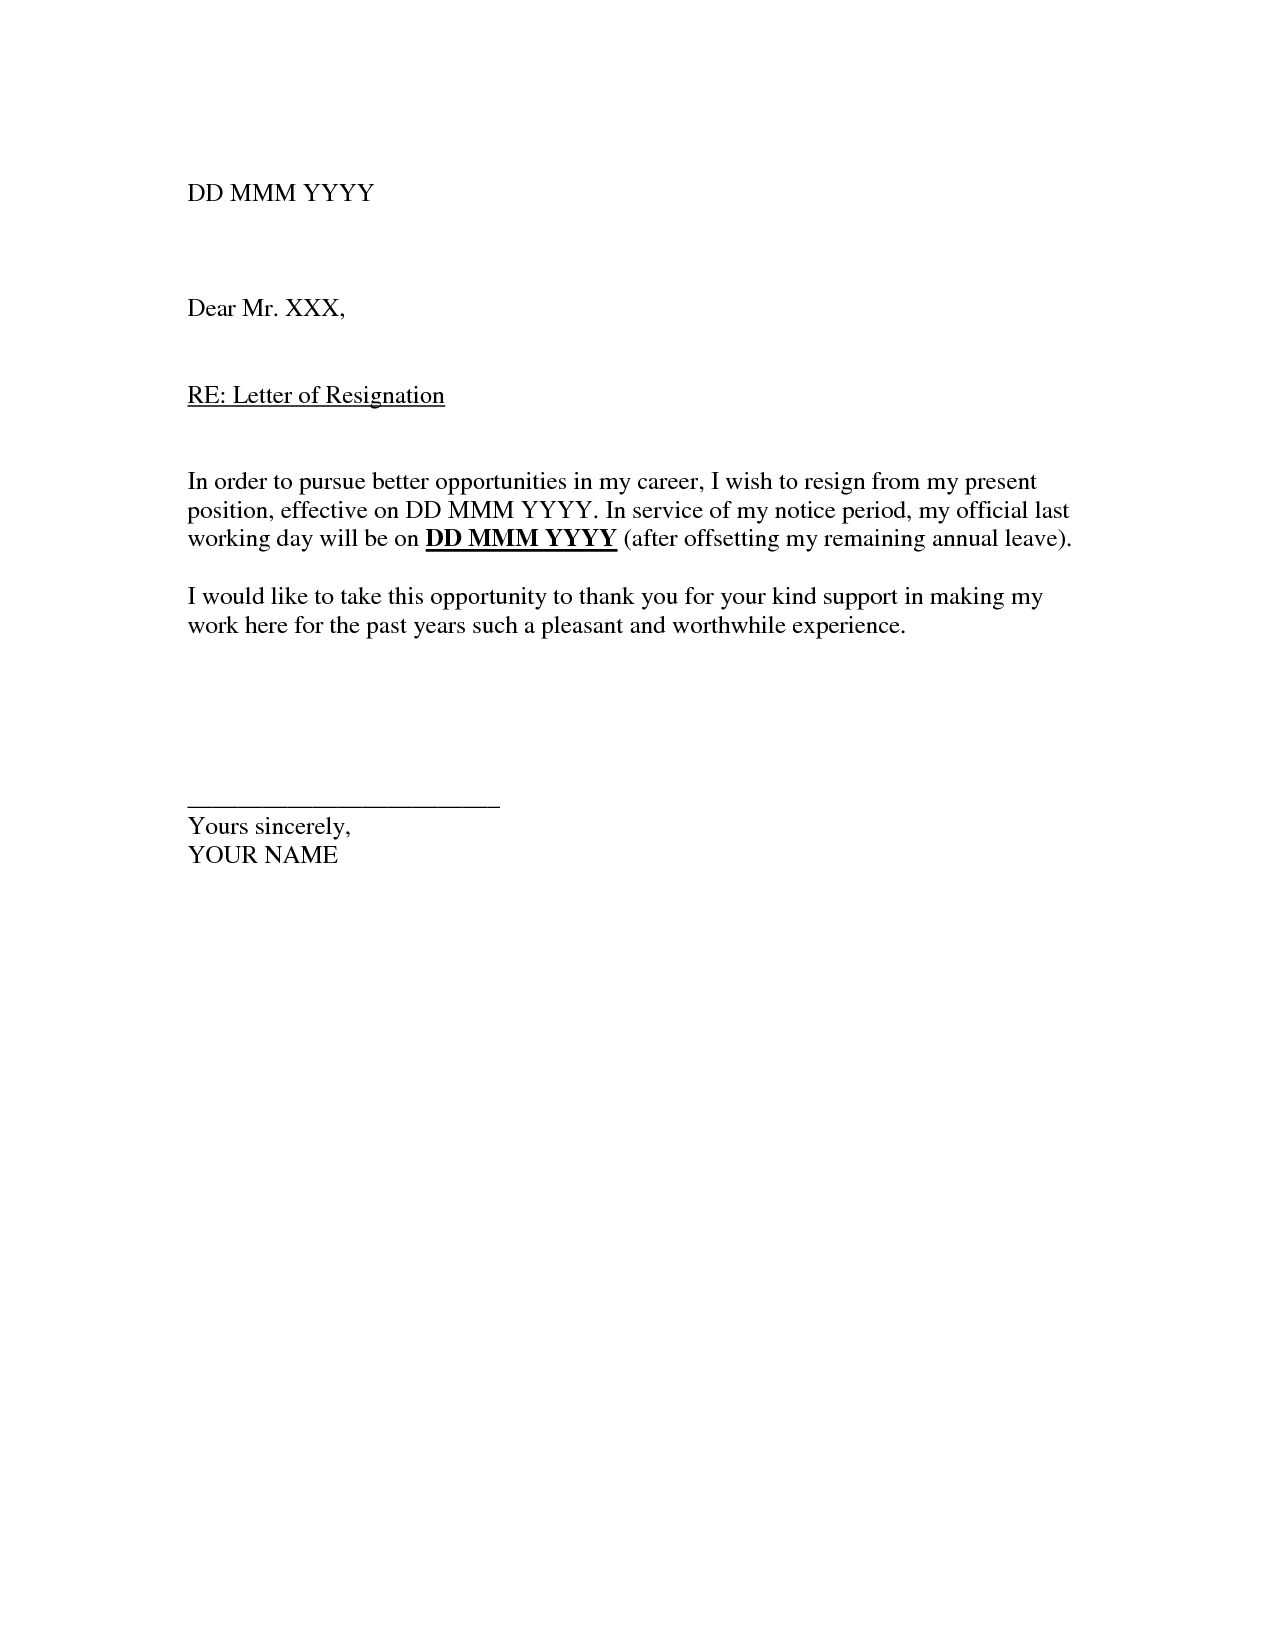 simple resignation letter sample with reason how to write easy simple resignation letter sample 25394 | Short Notice Resignation Letter Sample Resignation Letter Template